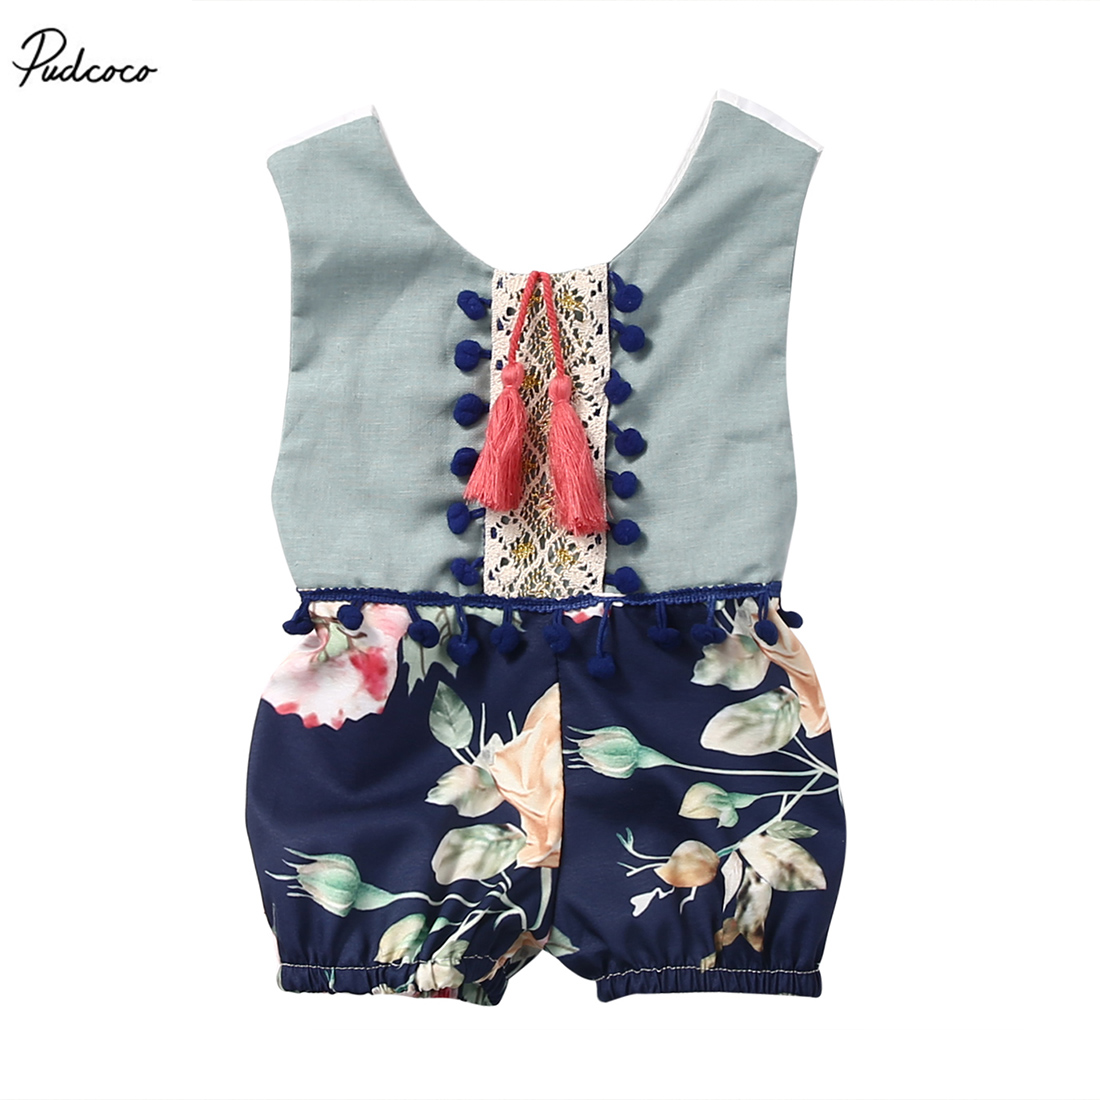 Toddler Baby Girls Lovely Casual Patchwork Tassel Romper Sleeveless Jumpsuit Clothes Outfits Lace Floral Sunsuit Outfits 2017 summer toddler kids girls striped baby romper off shoulder flare sleeve cotton clothes jumpsuit outfits sunsuit 0 4t